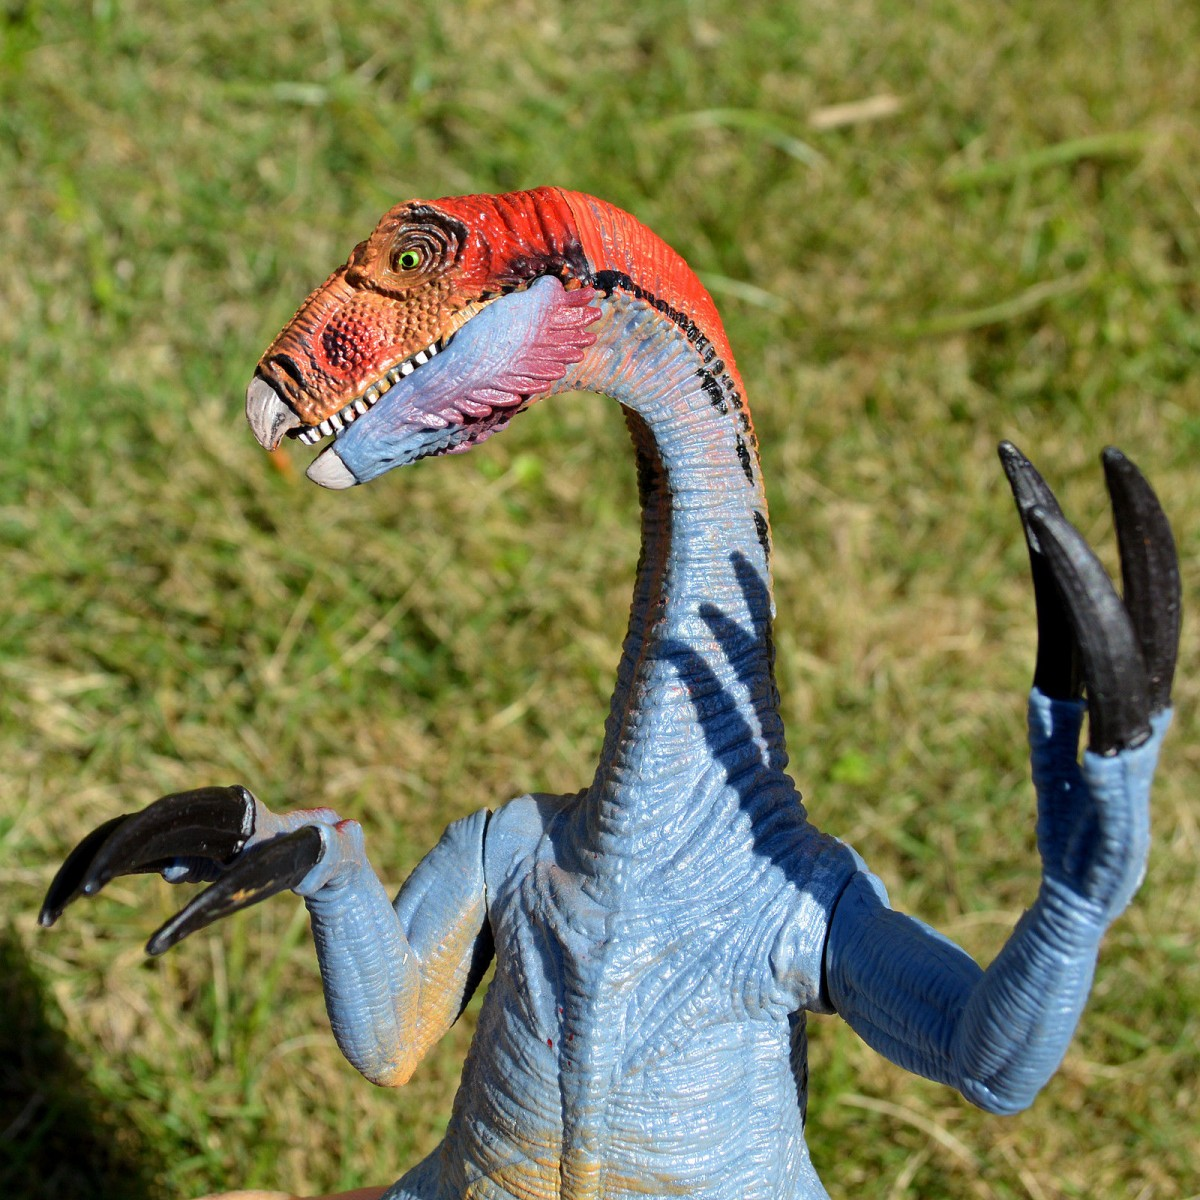 Large Therizinosaurus Model Birthday Gift For Kids Realistic Dinosaur Figure Toy